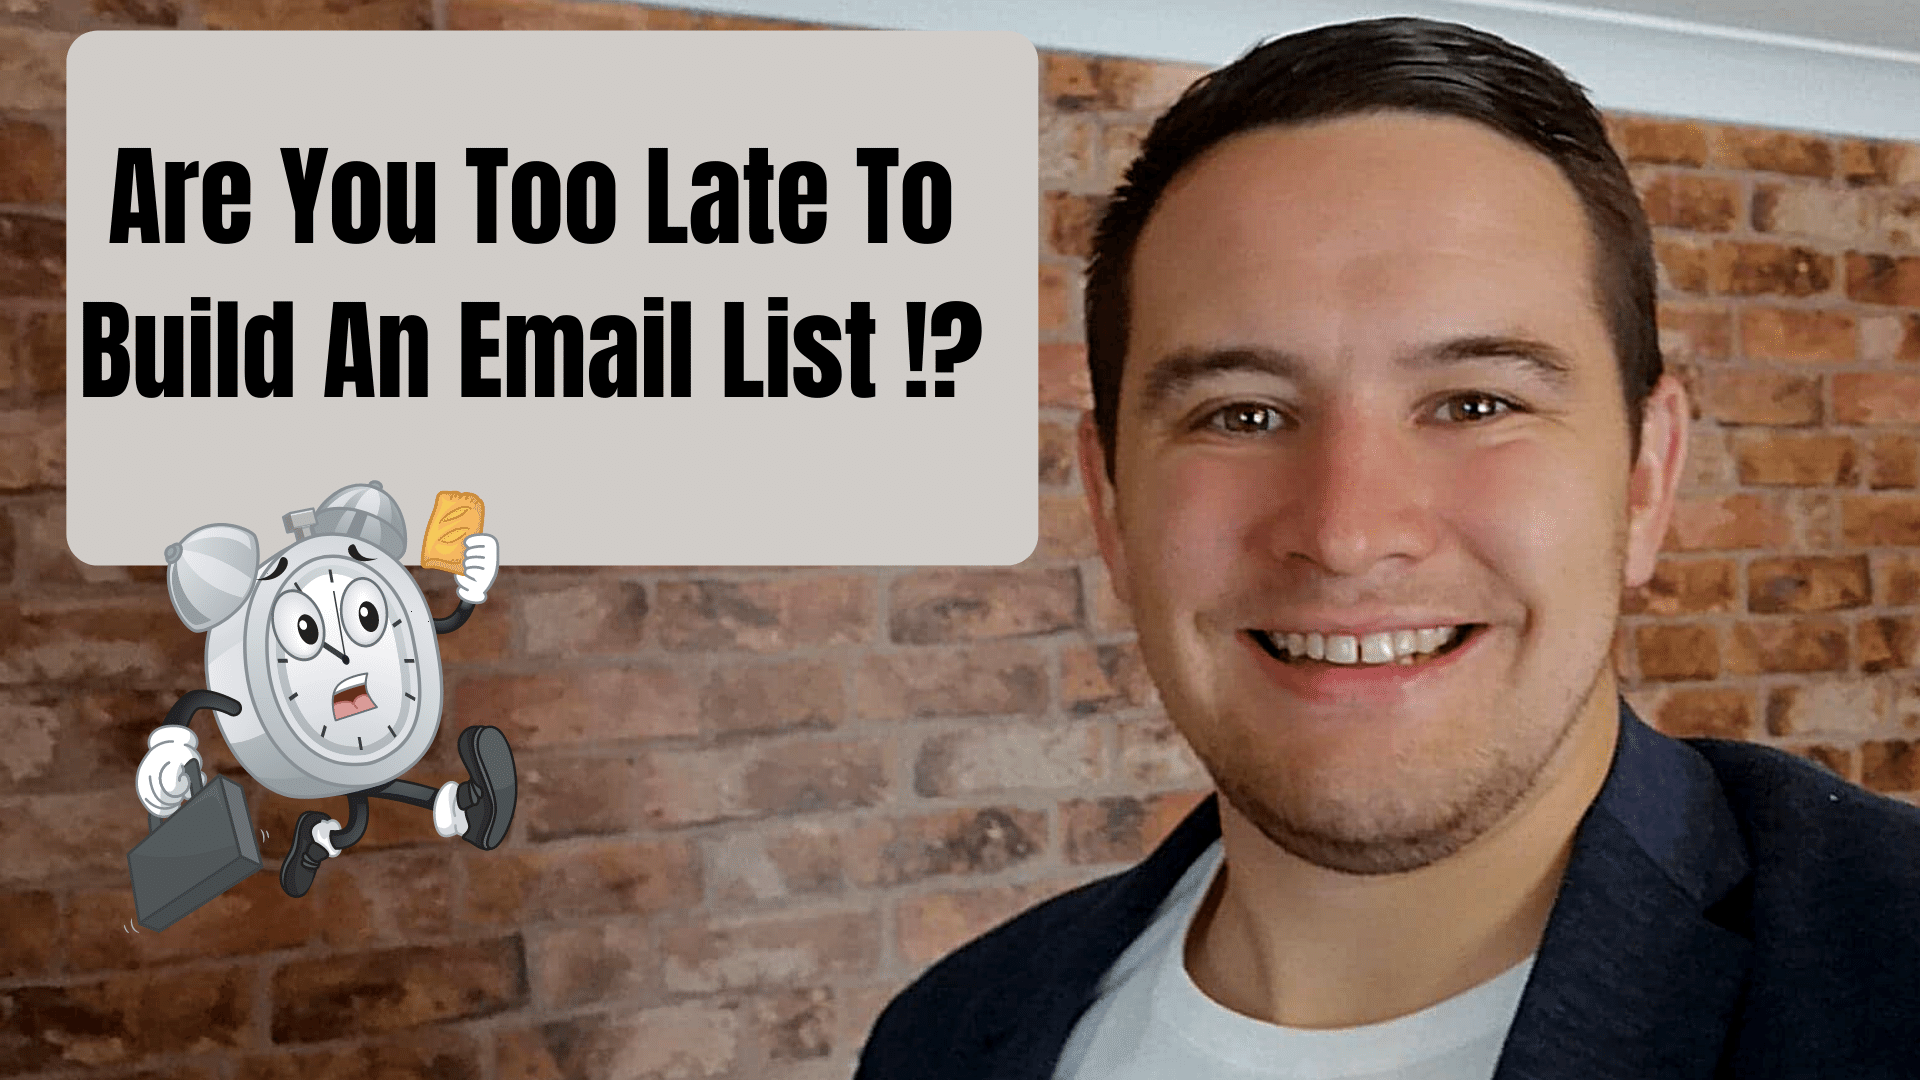 Is Building An Email List A Waste Of Time In 2021-22